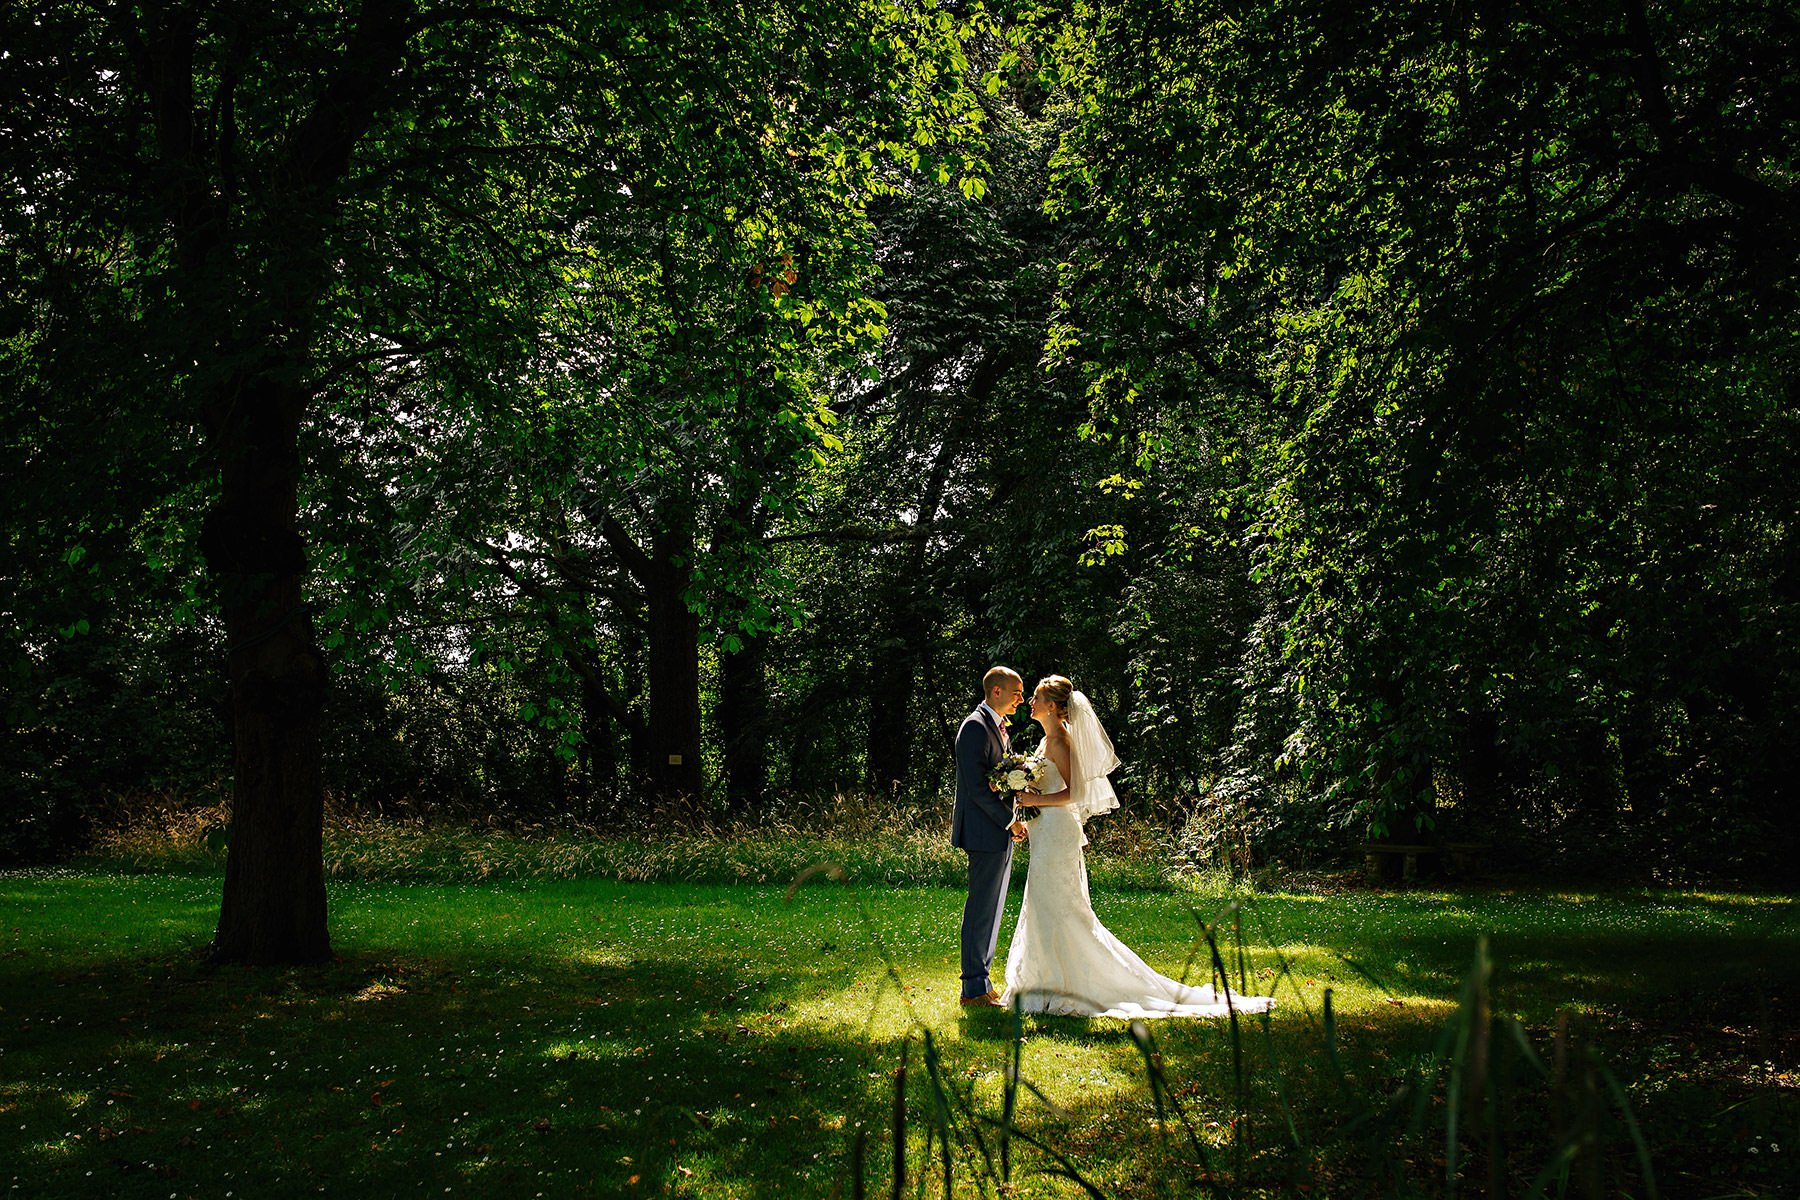 Wedding photographer in